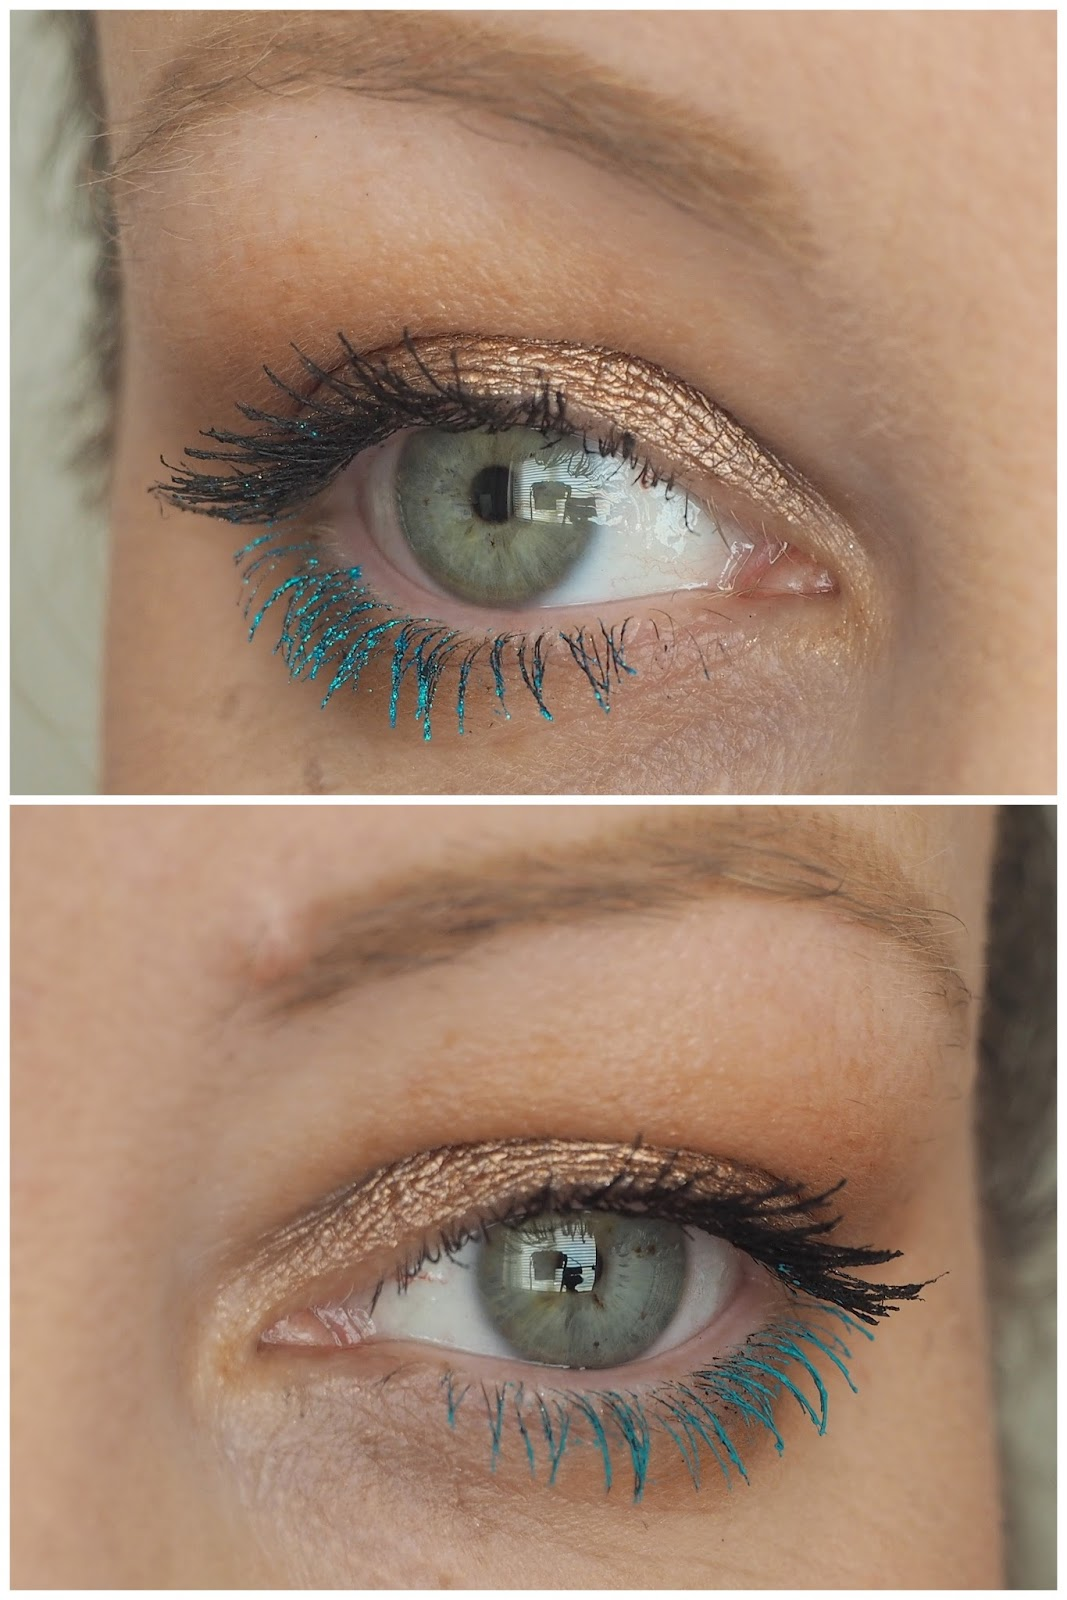 f1874e87538 In the photos below, I applied Deep End over black mascara, just for a bit  more oomph. Can you cope? The answer is no.